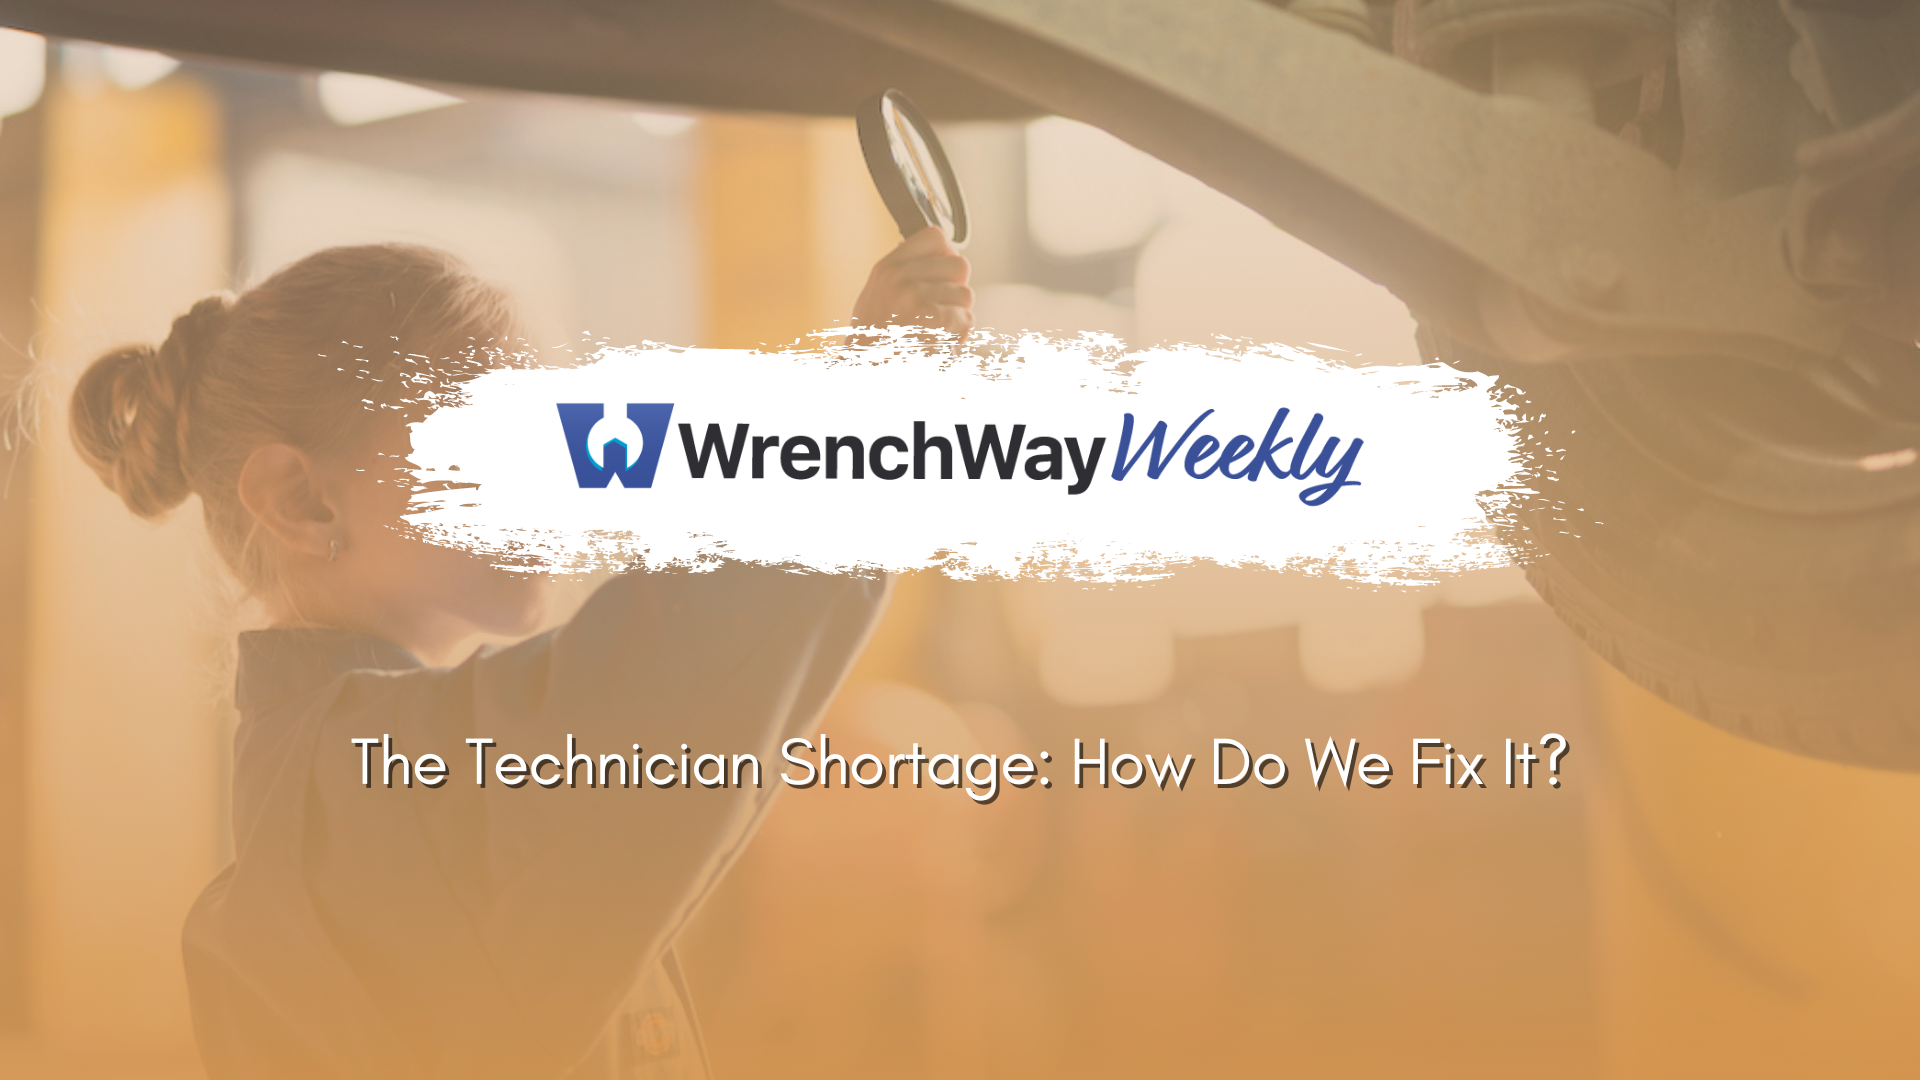 wrenchway weekly episode how do we fix the technician shortage